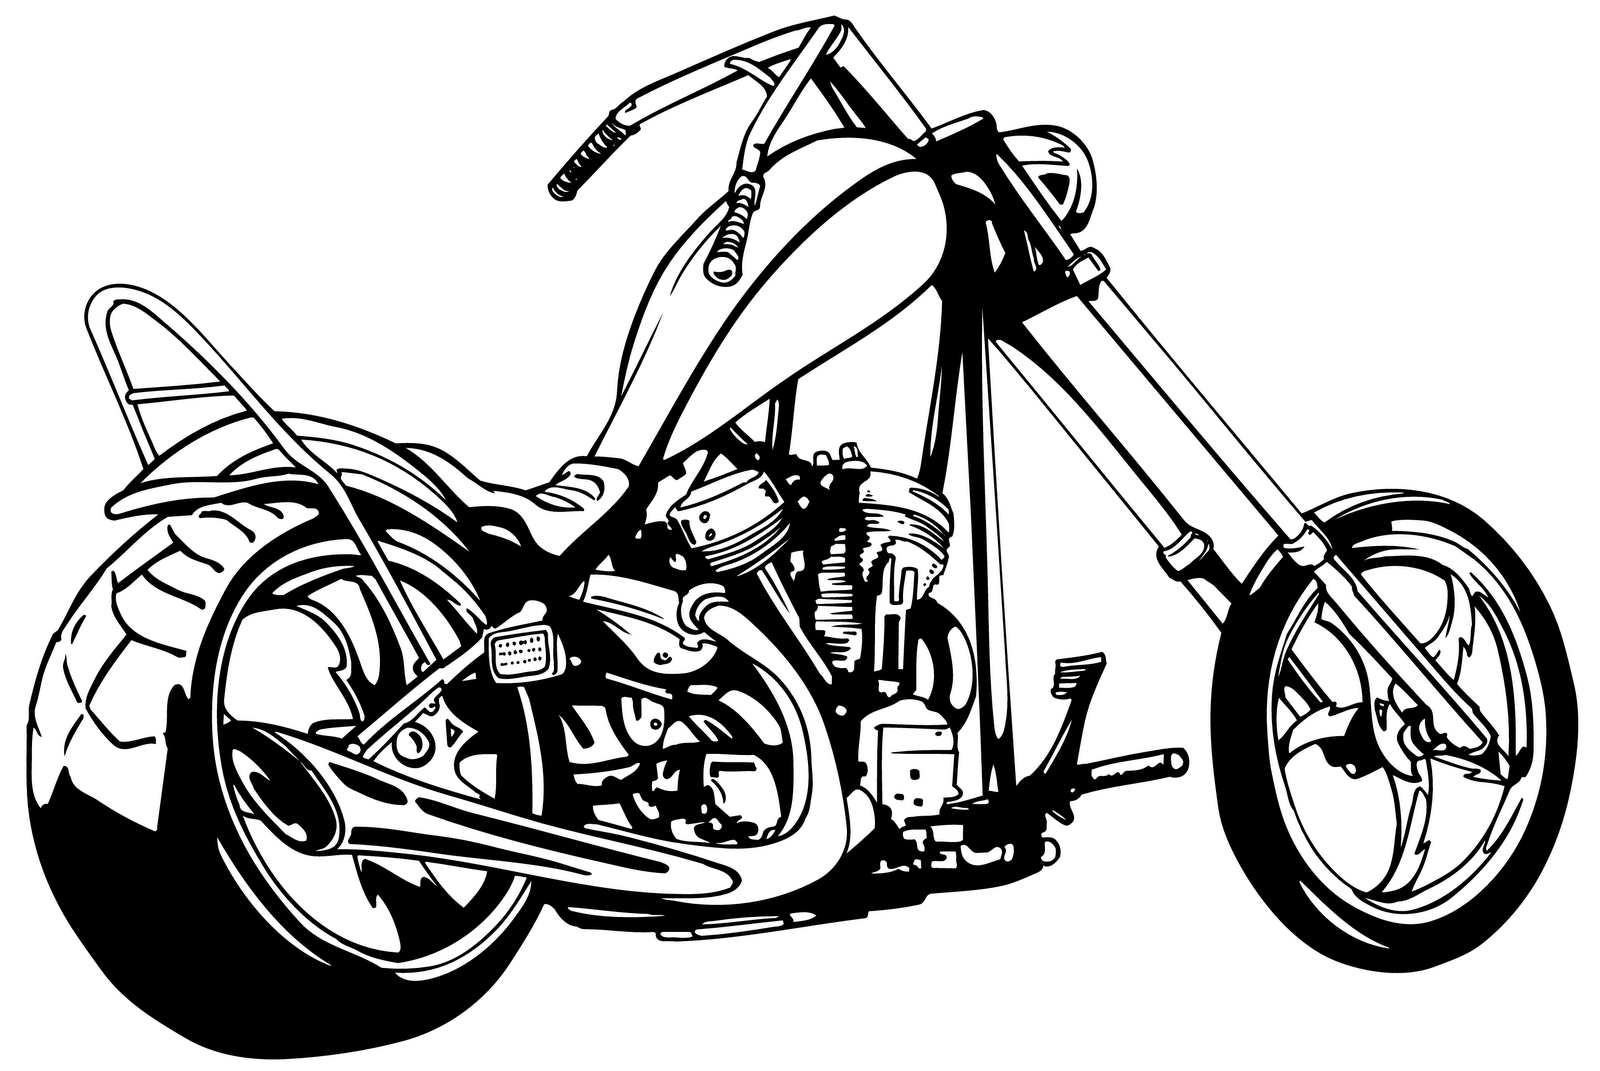 svg royalty free Harley davidson clipart project. Motorcycle free image .